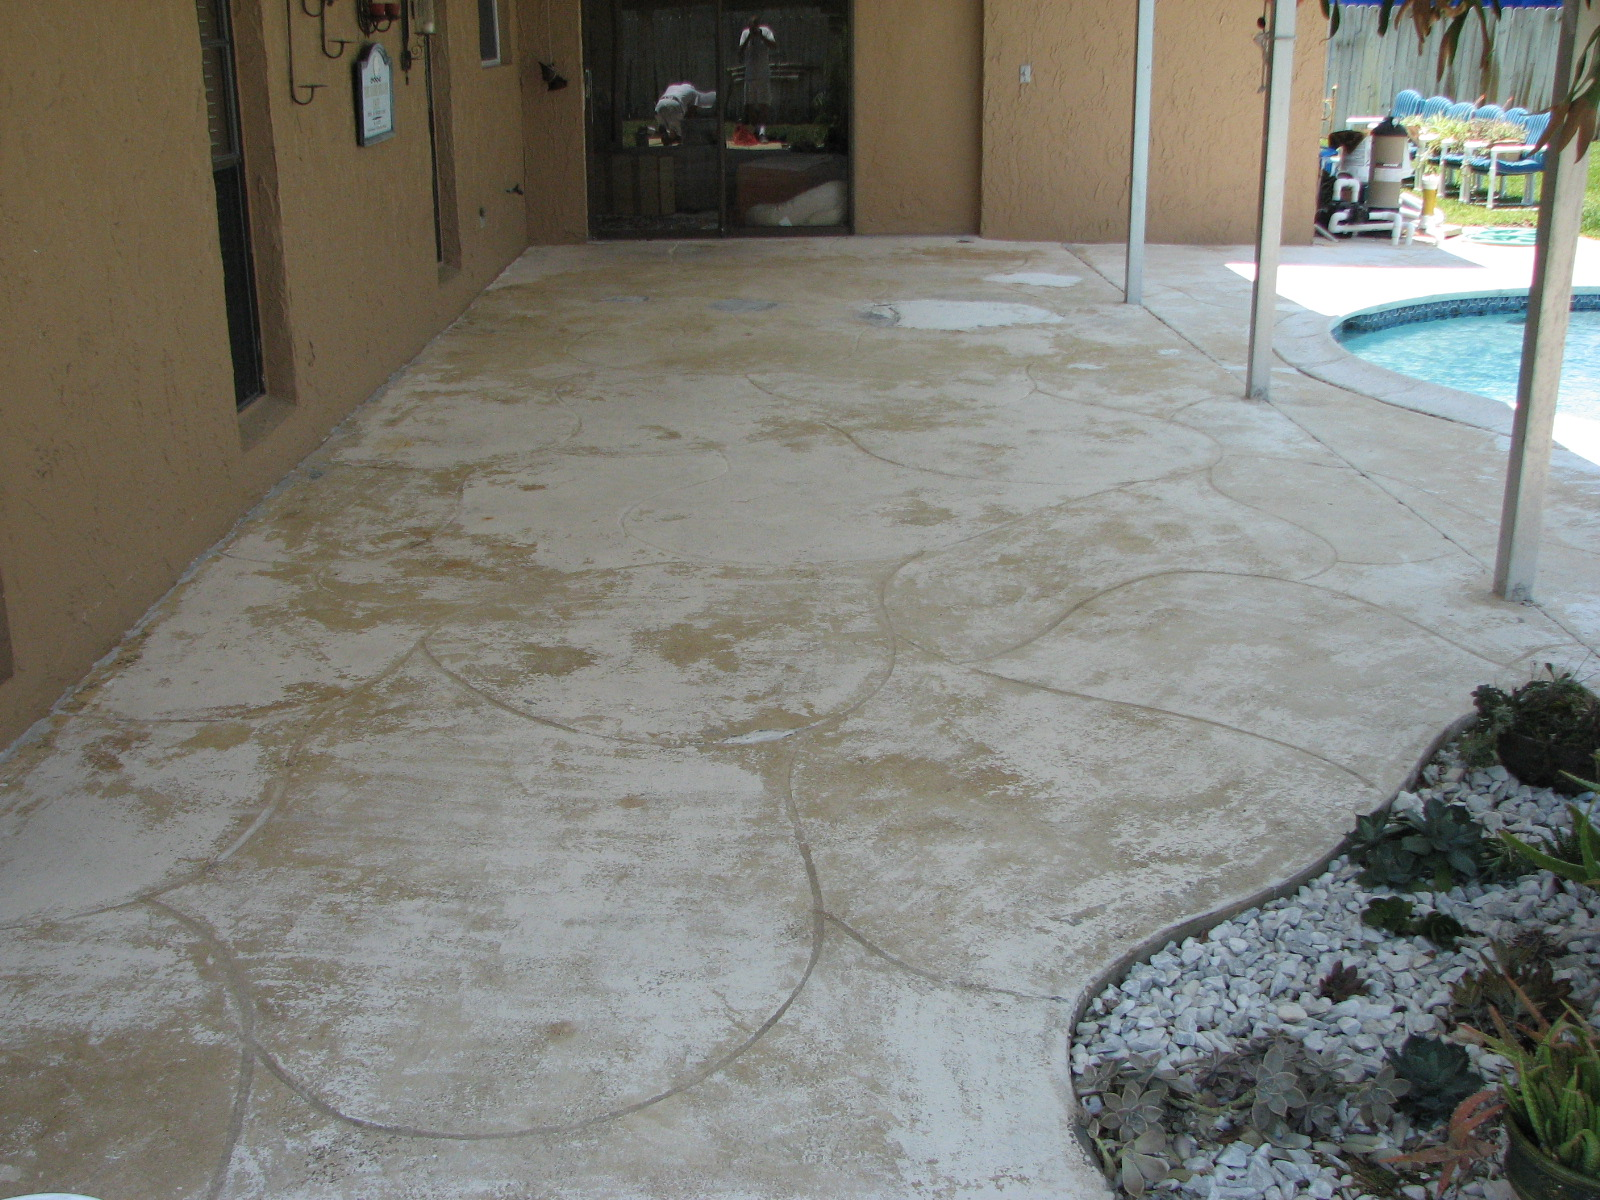 Concrete Pool Deck Finishes Pool Deck Repair  Melbournefl  Pool Deck Cracks  Pooldeck Painting